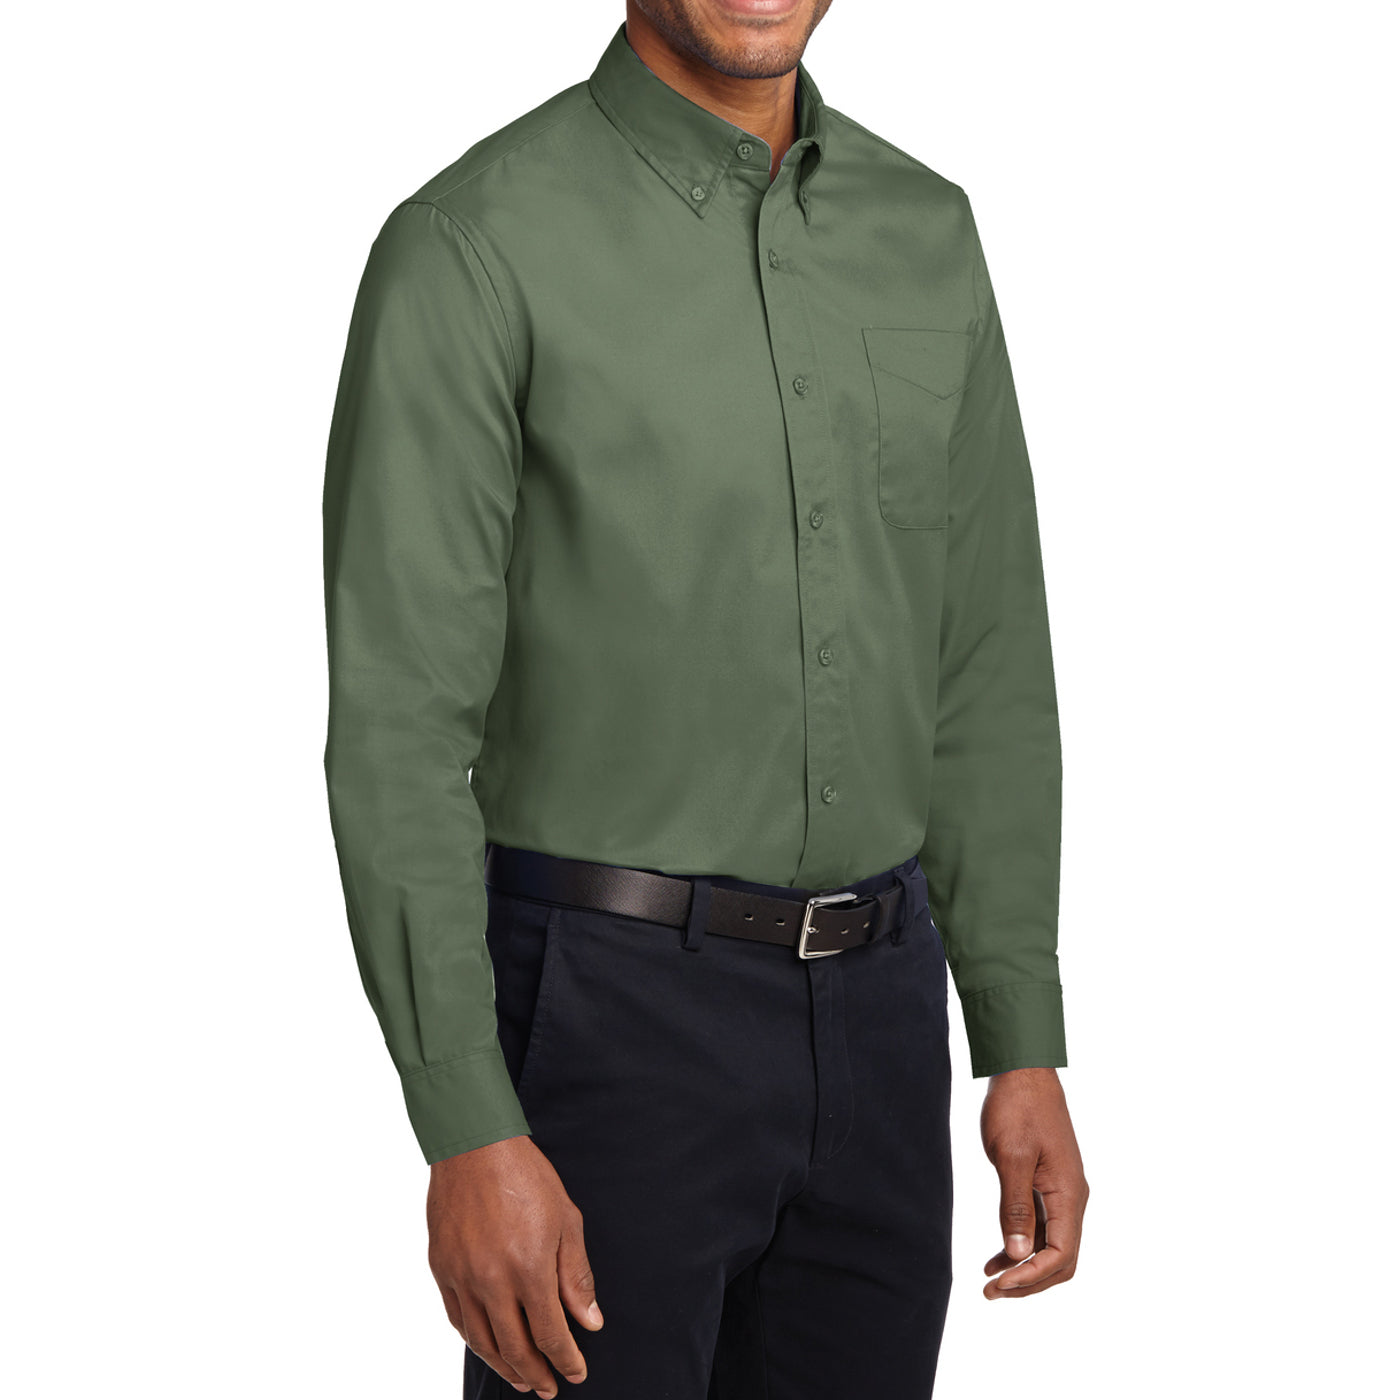 Men's Long Sleeve Easy Care Shirt - Clover Green - Side